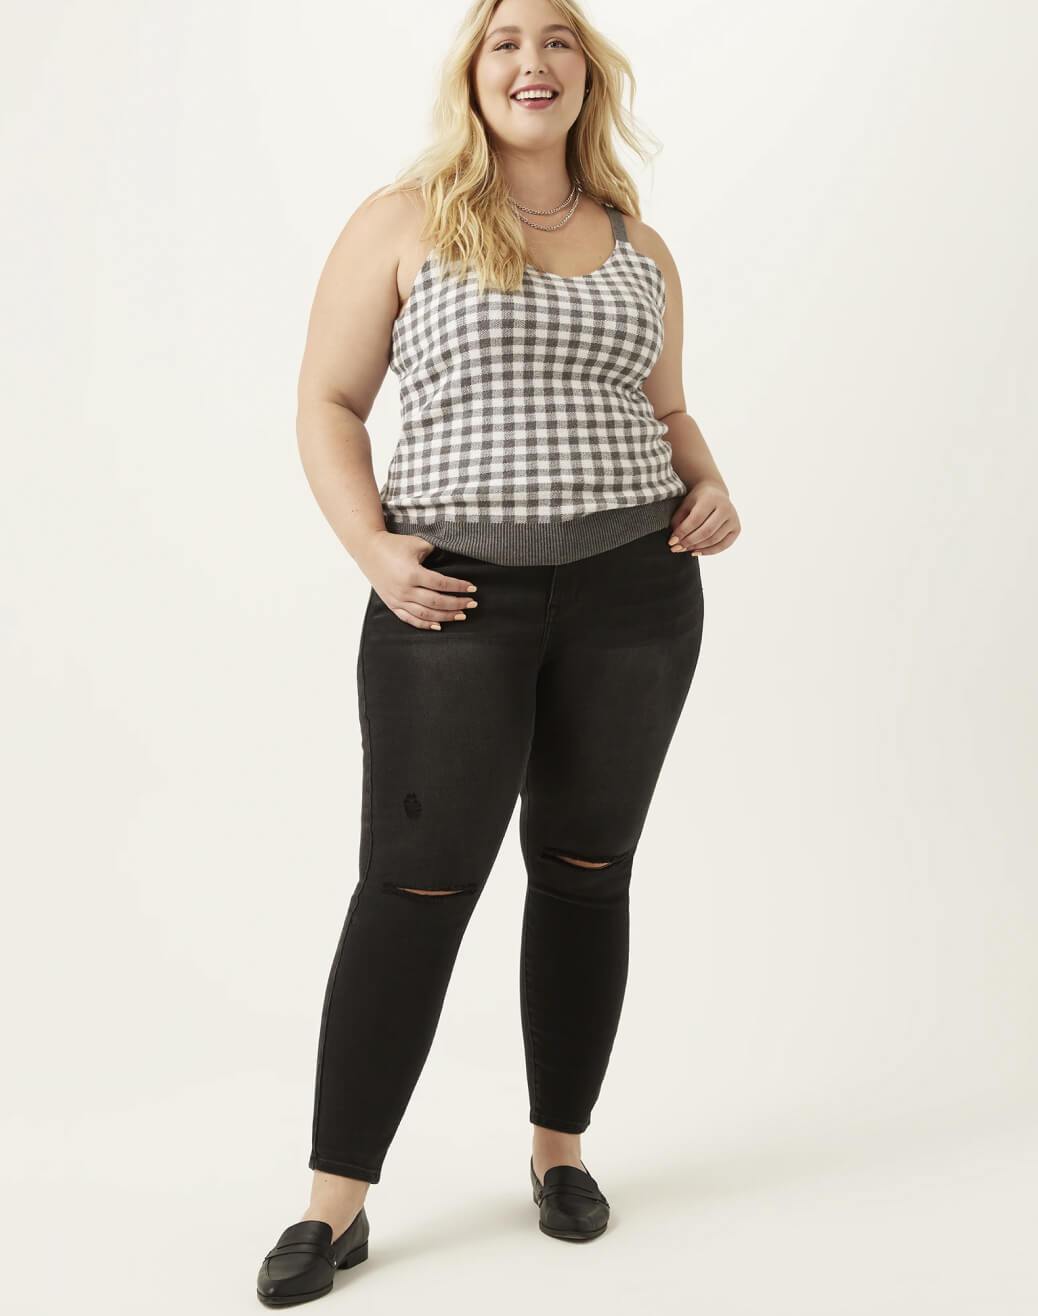 Plus Woman in Plaid Tank and Black Jeans